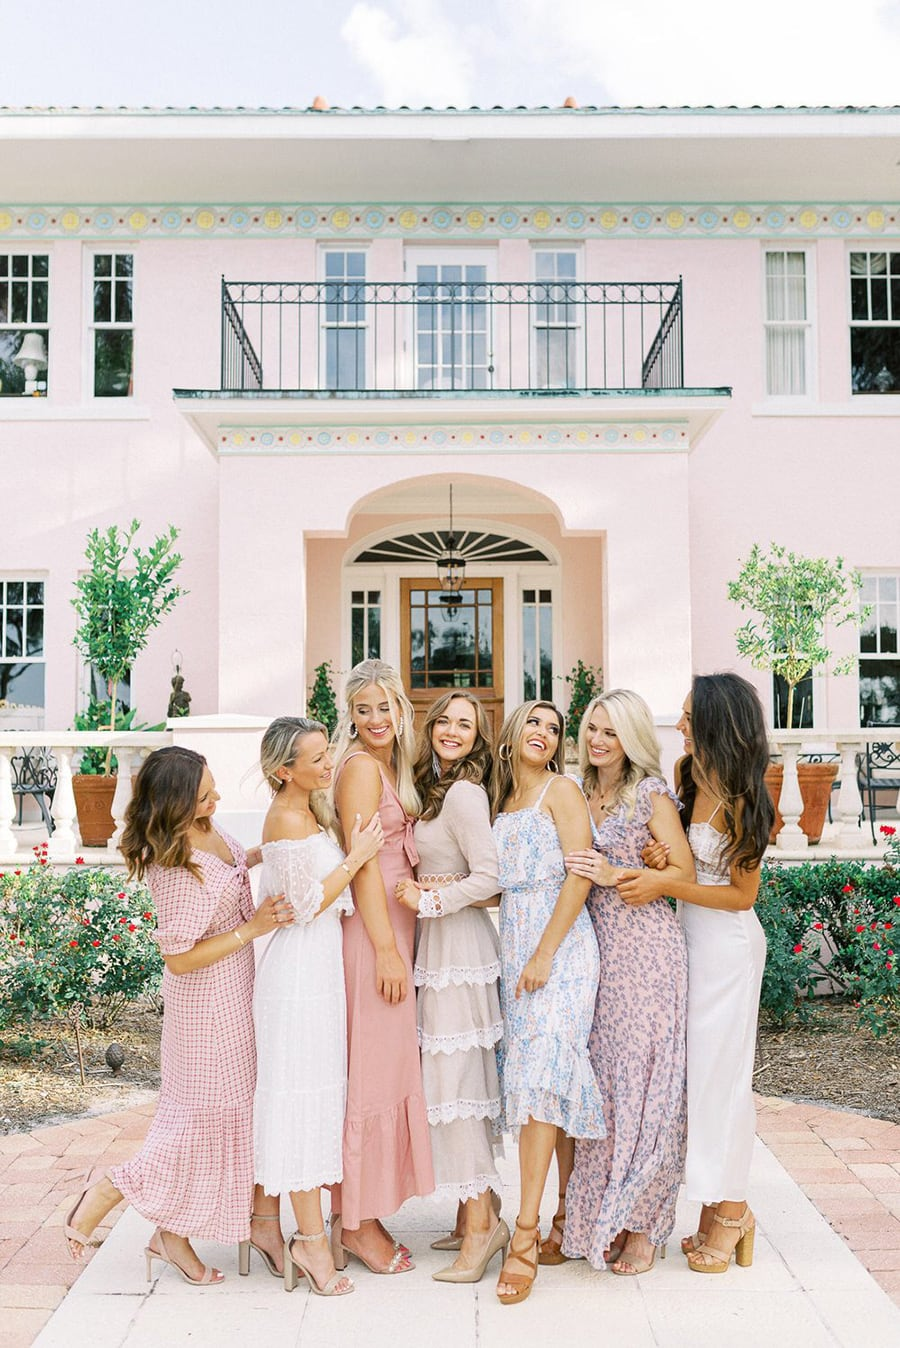 Spring pastel mismatched bridesmaid dresses in pretty prints paired with nude heels | Photography: Sandra Morlet Photography via Ruffled